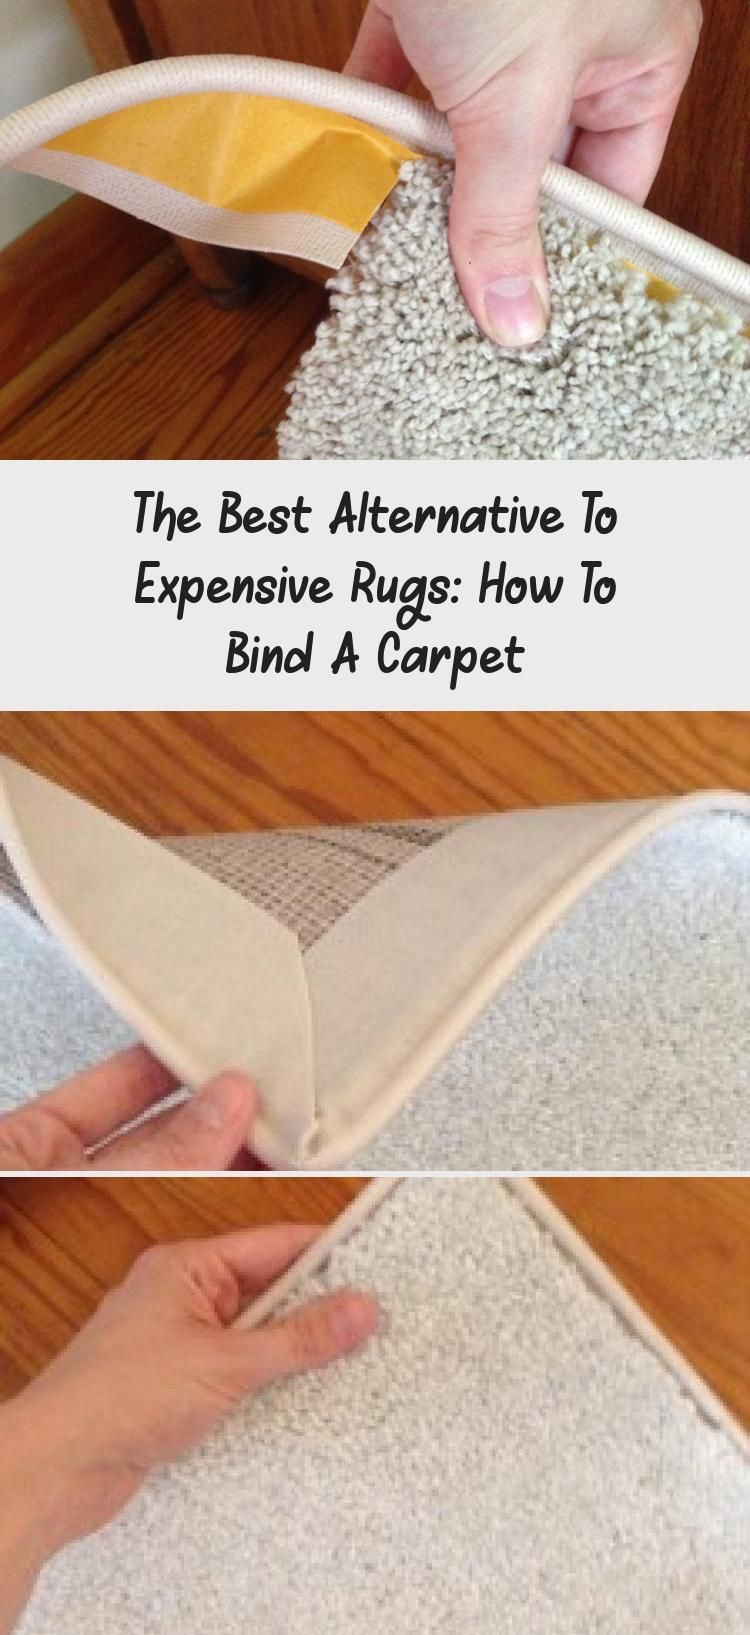 The Best Alternative To Expensive Carpets Binding A Carpet Carpetforlivingroom Altern Altern Alternativ In 2020 Expensive Rug Rugs On Carpet Rug Binding